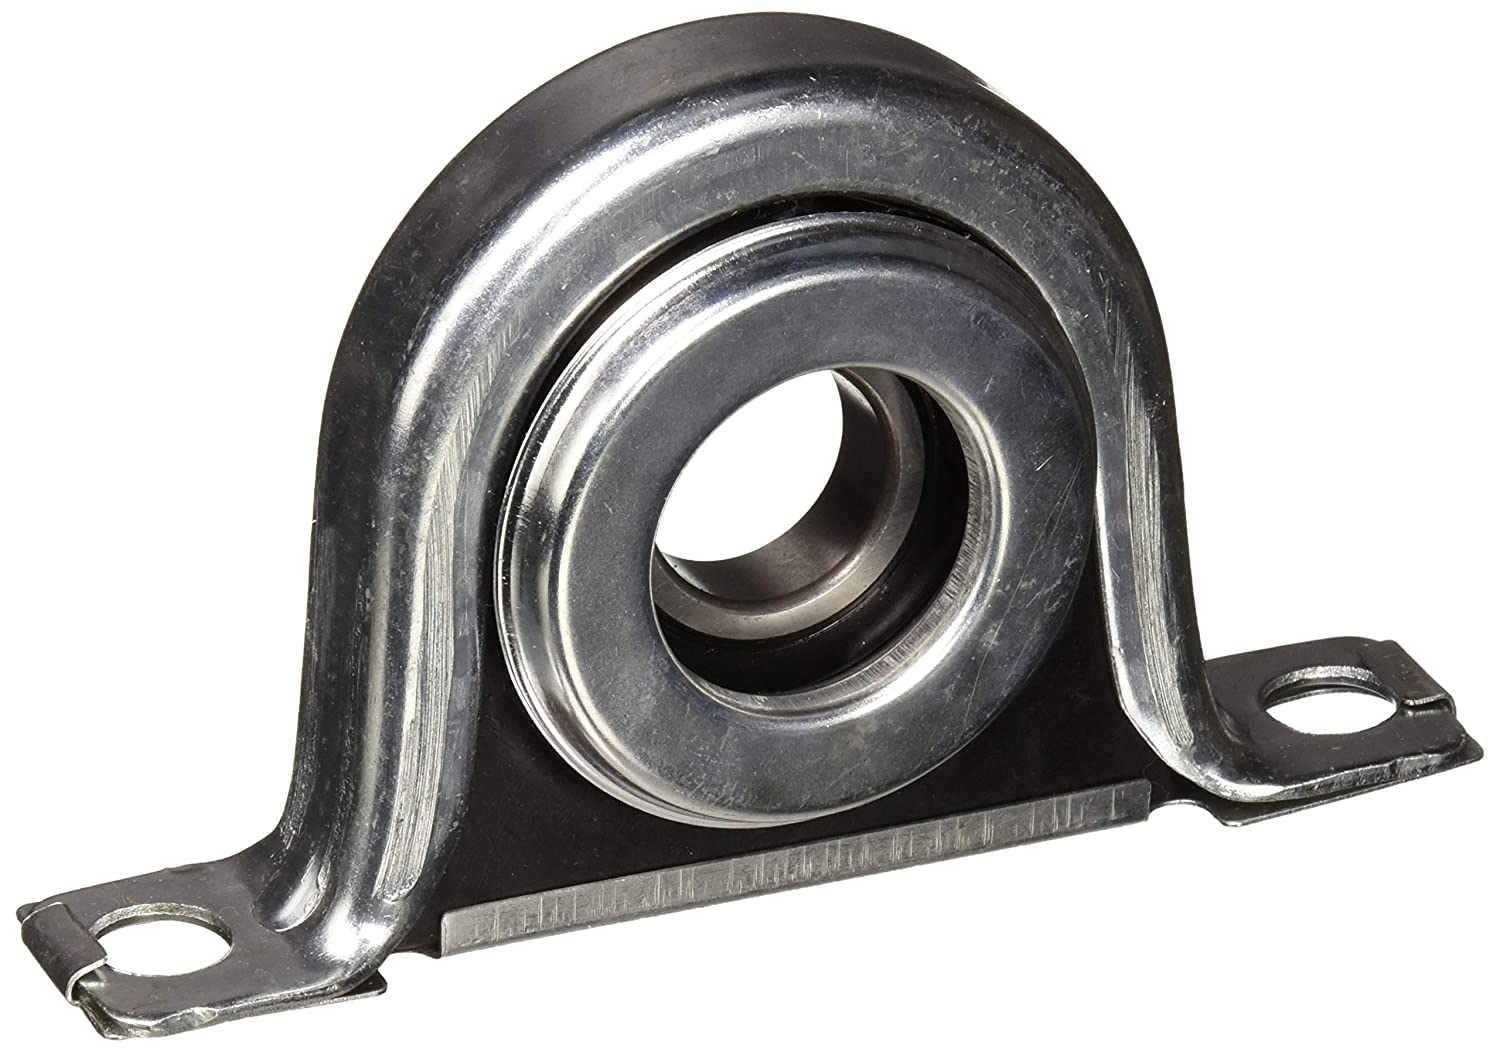 Anchor 6062 Drive Shaft Center Support